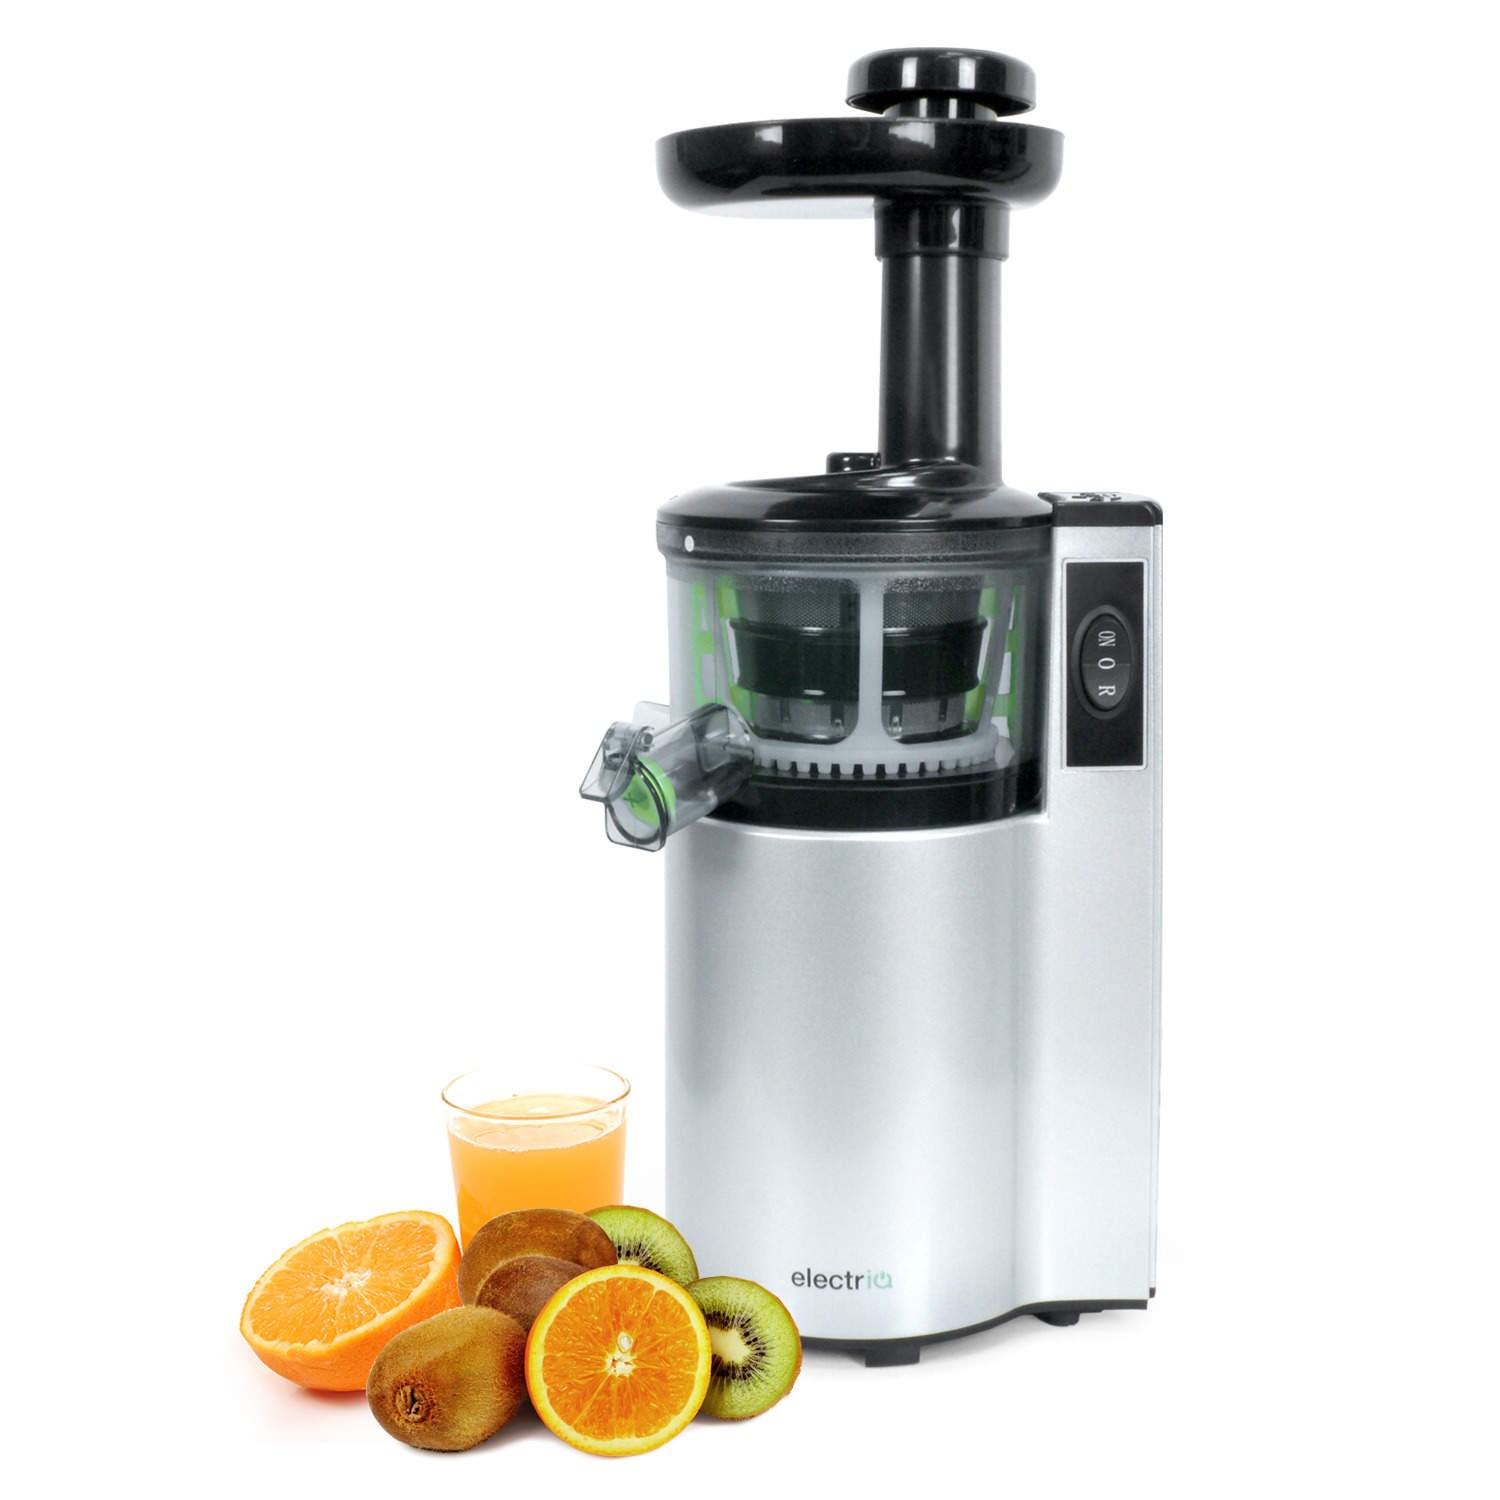 Juice Opskrifter Slow Juicer : ElectriQ vertical Slow Masticating Juicer Fruit vegetable Juice Extractor eBay